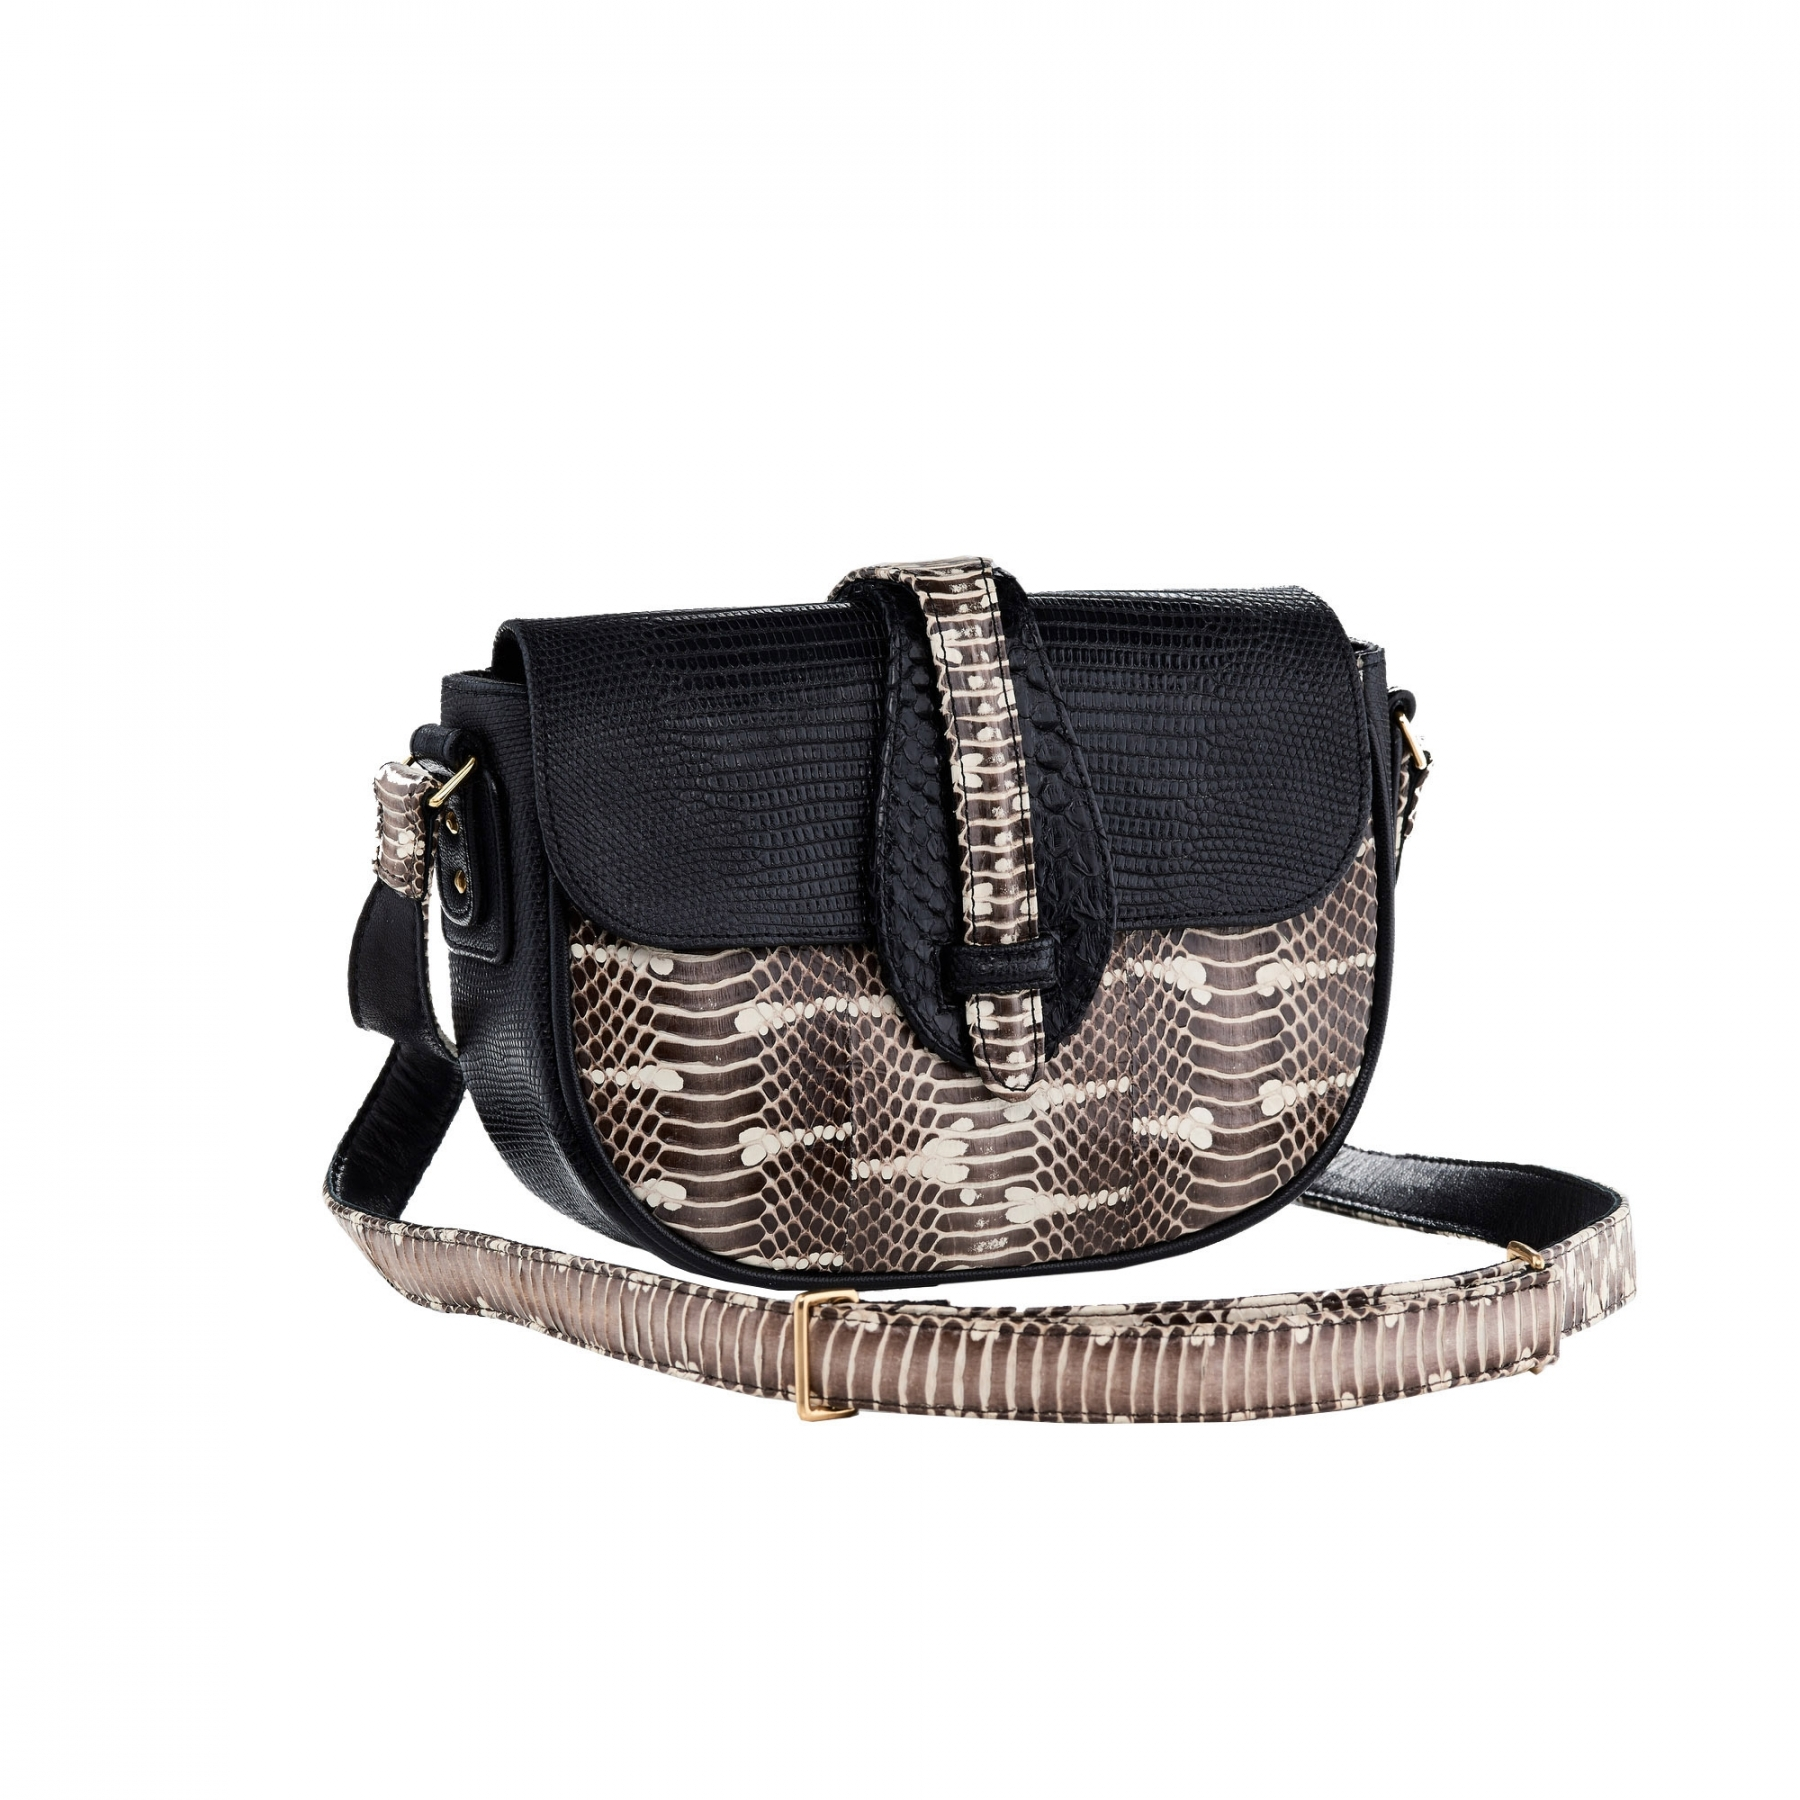 Hobo bag andrea black lizard and watersnake jpg 2000x2000 Black hobo lizard b6af58119d